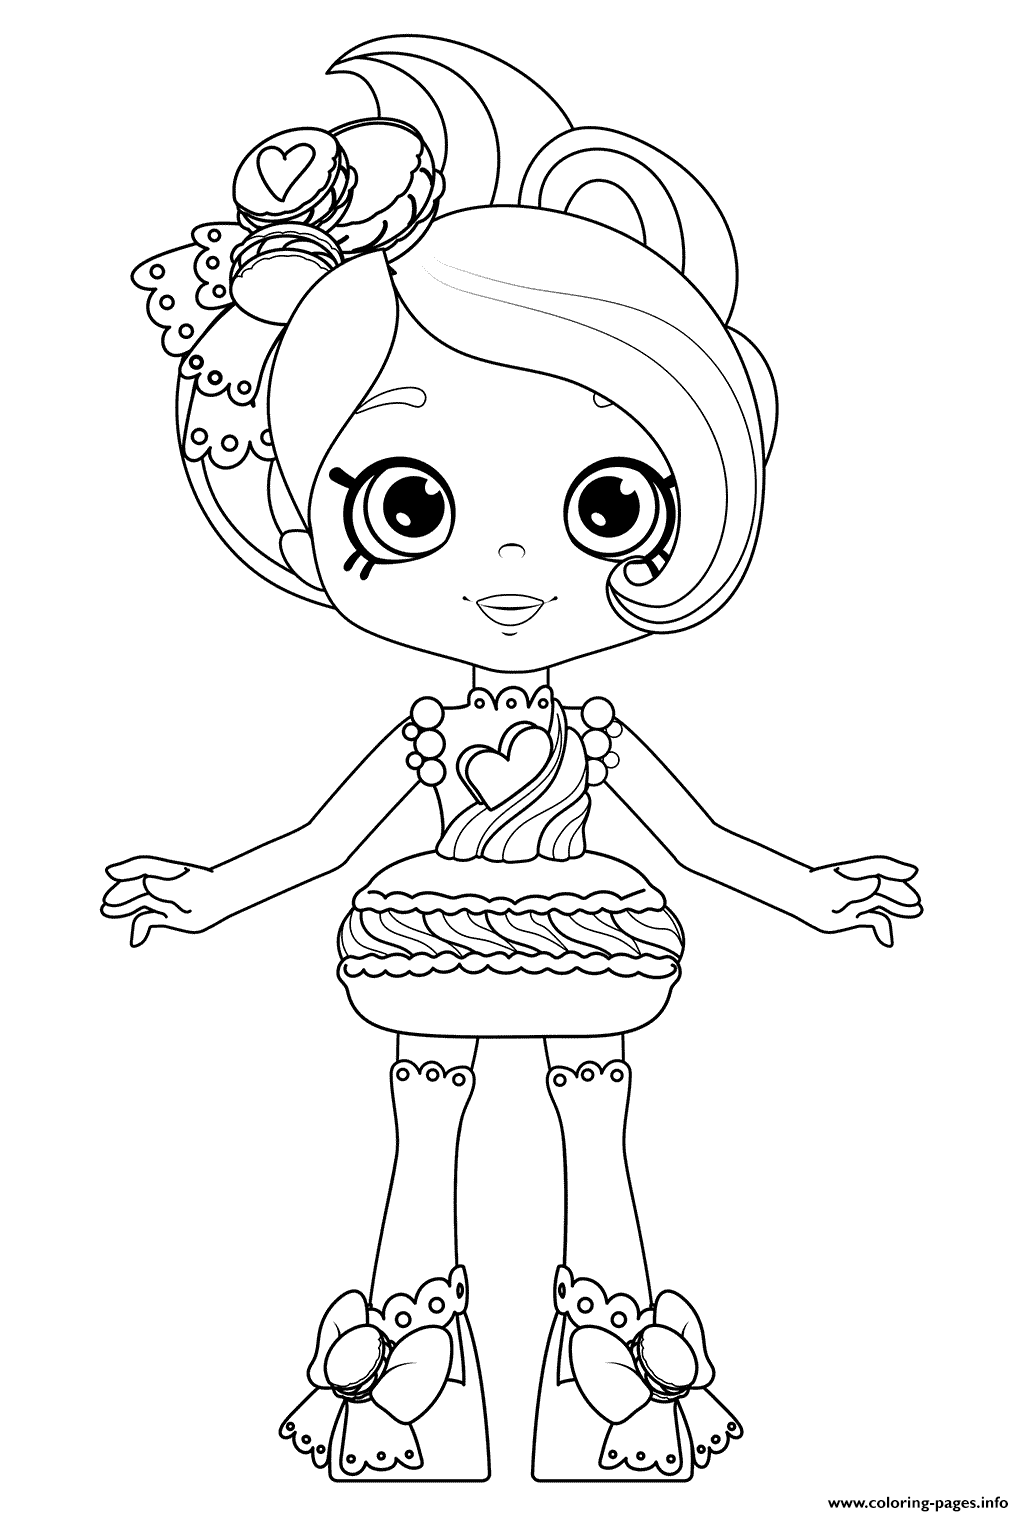 Shopkins Happy Places Coloring Pages at GetDrawings | Free ...